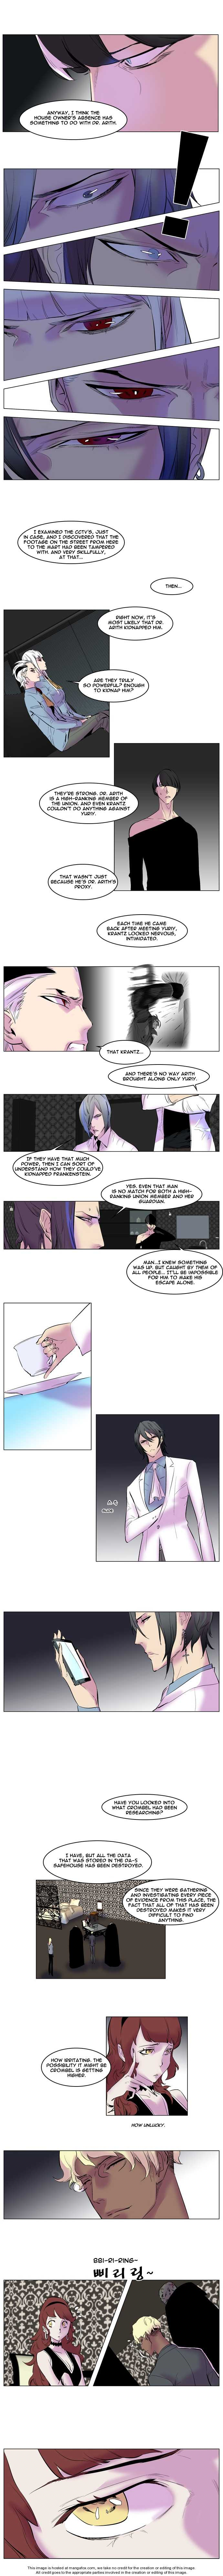 Noblesse 144 Page 3